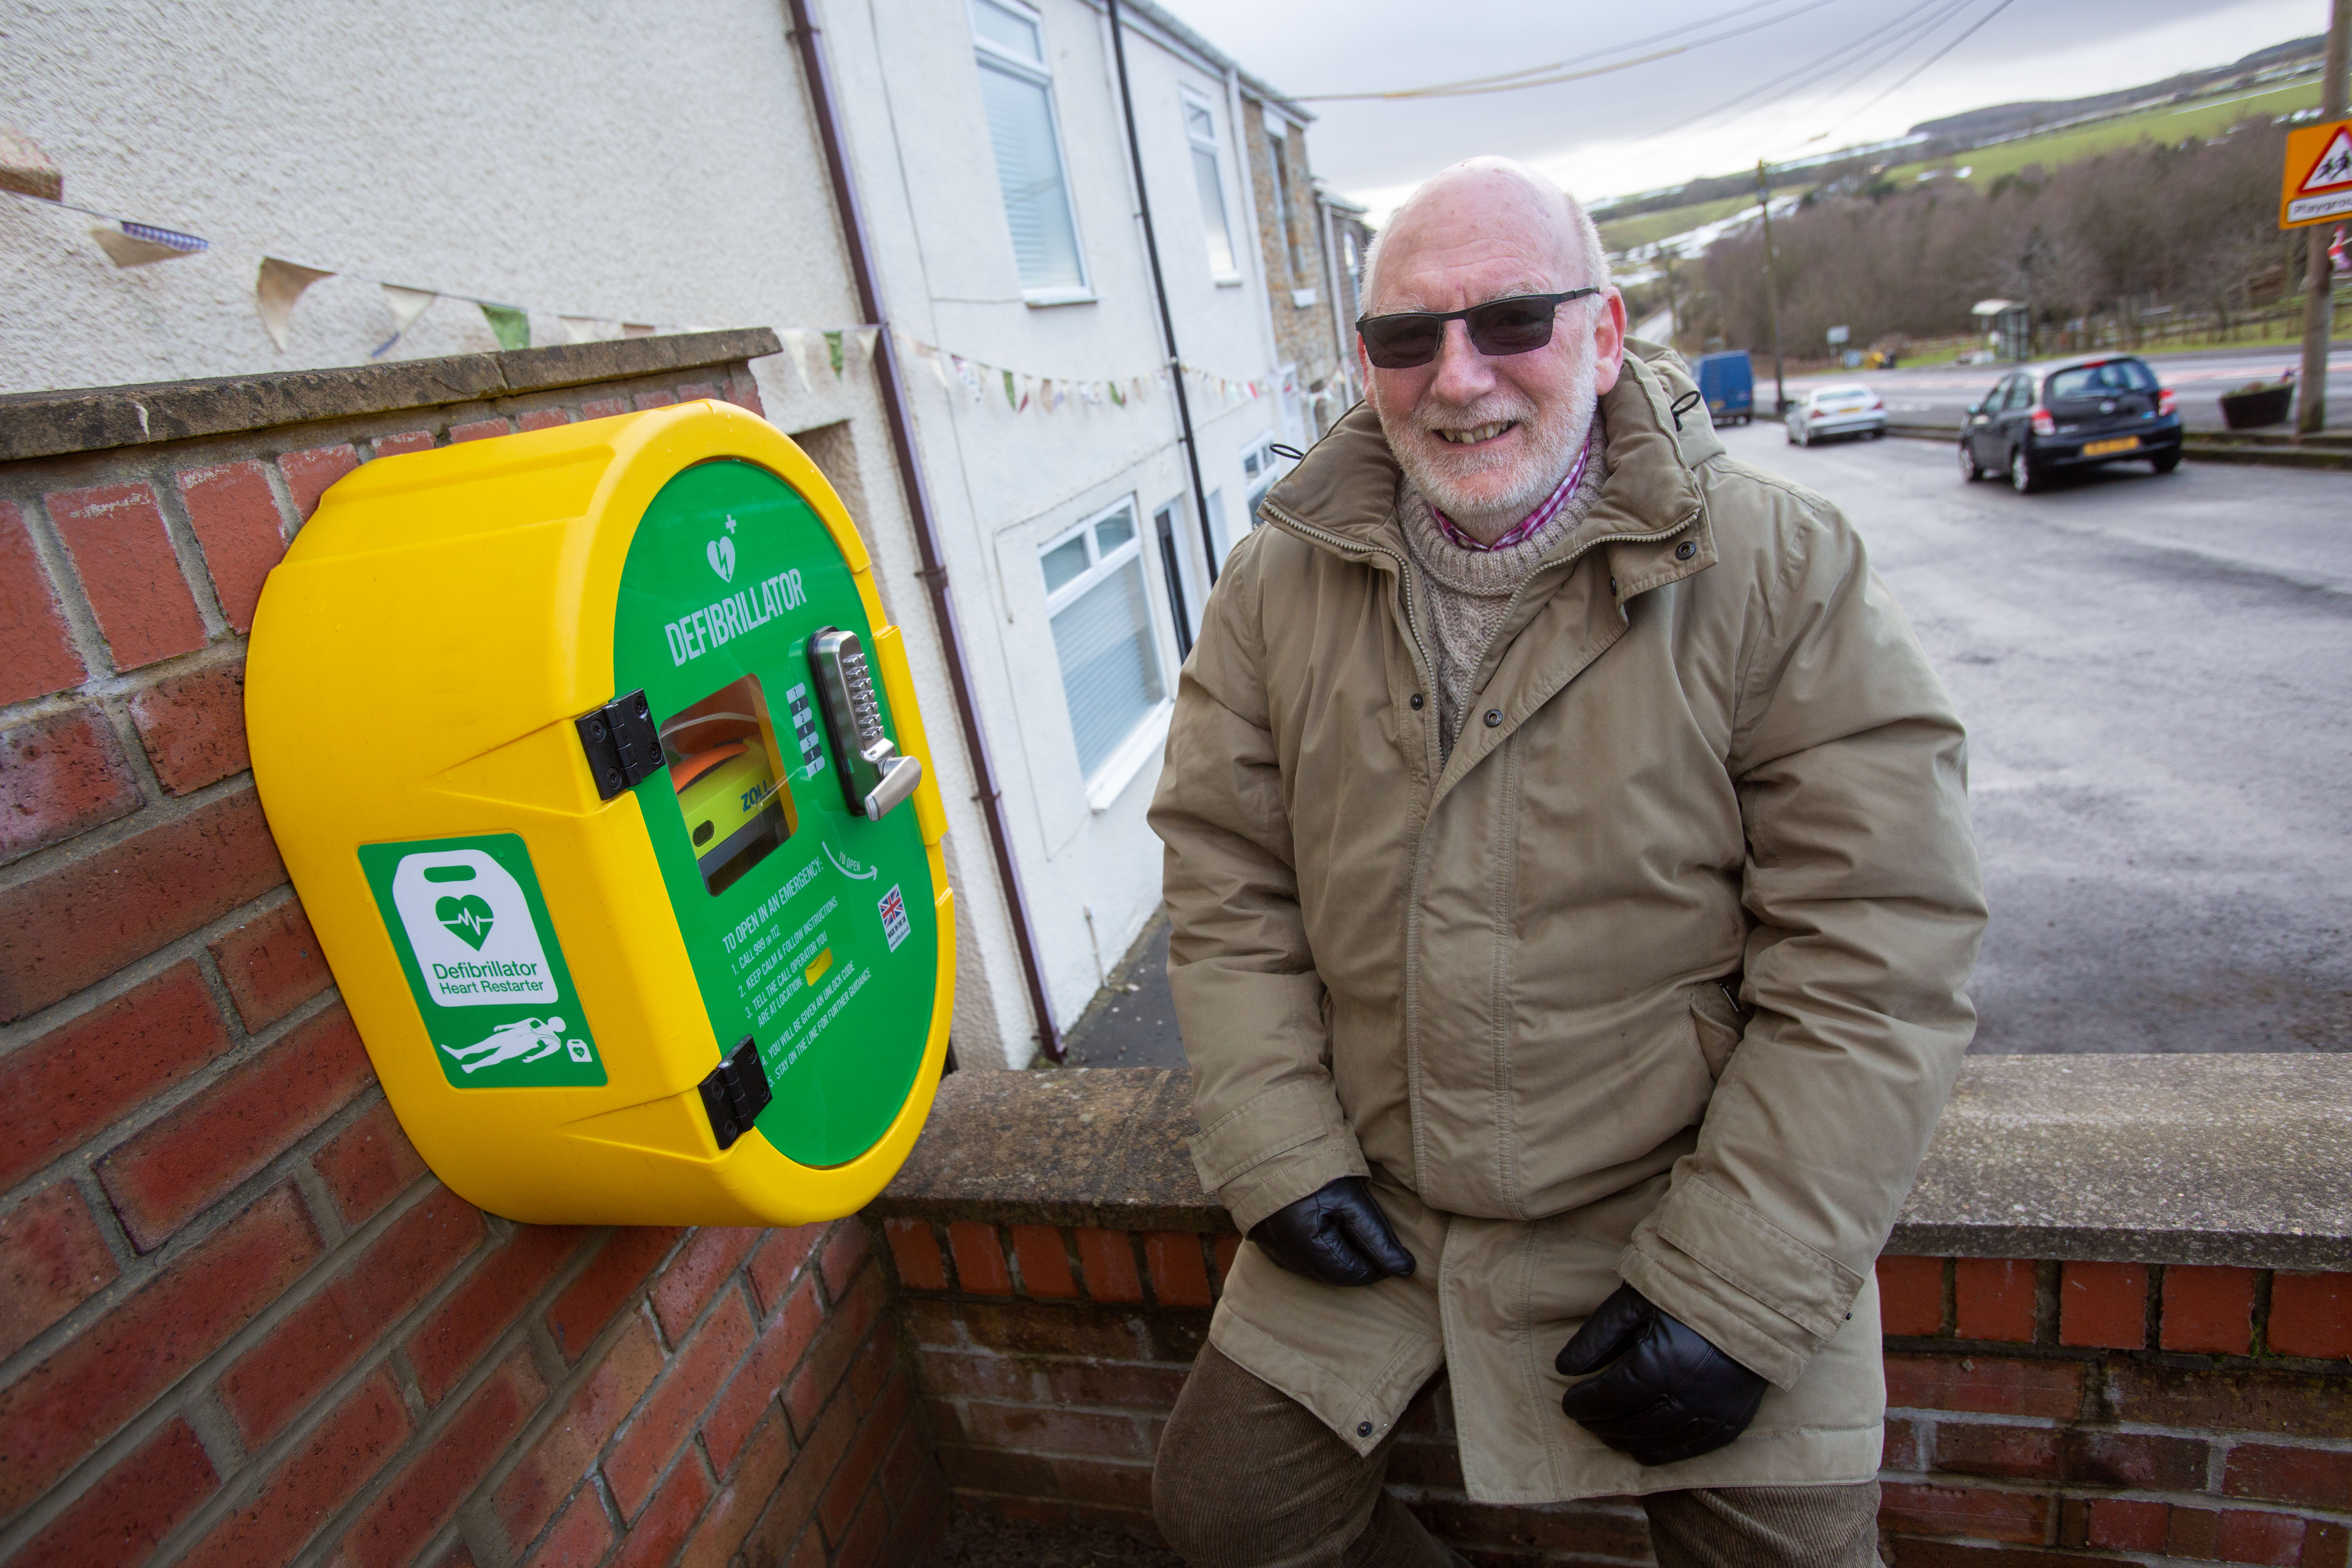 Peter Woff, secretary for TRACC, by the new defibrillator